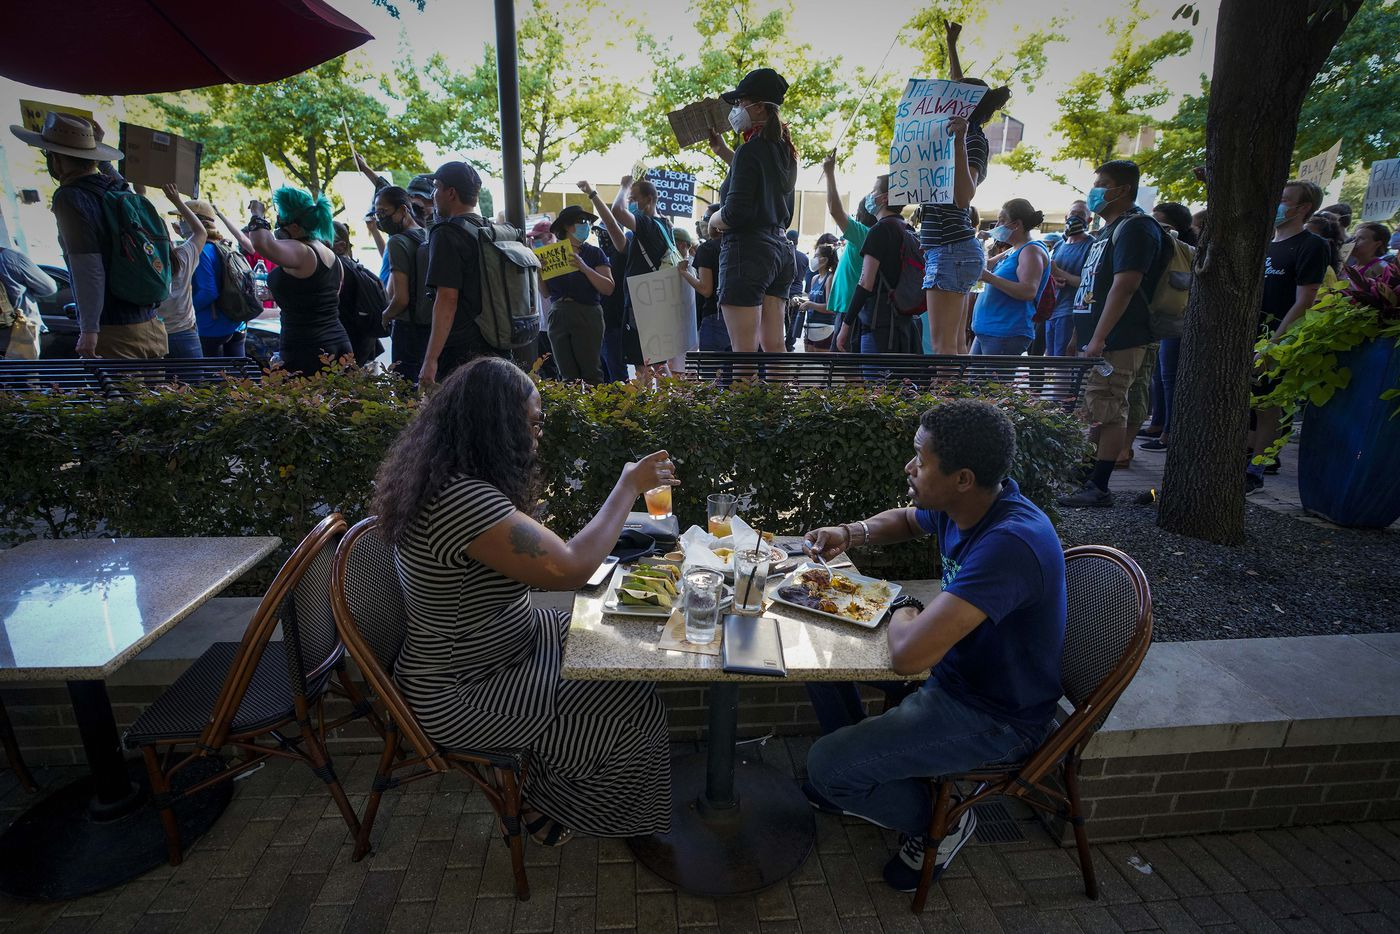 A couple eats dinner at Gloria's Latin Cuisine at the corner of Lemmon Avenue and Carlisle Street as a protest that began at Cole Park pauses while marching around the West Village and Uptown neighborhoods on Friday, June 5, 2020, in Dallas. Protests continued Friday in the response to the death of George Floyd.